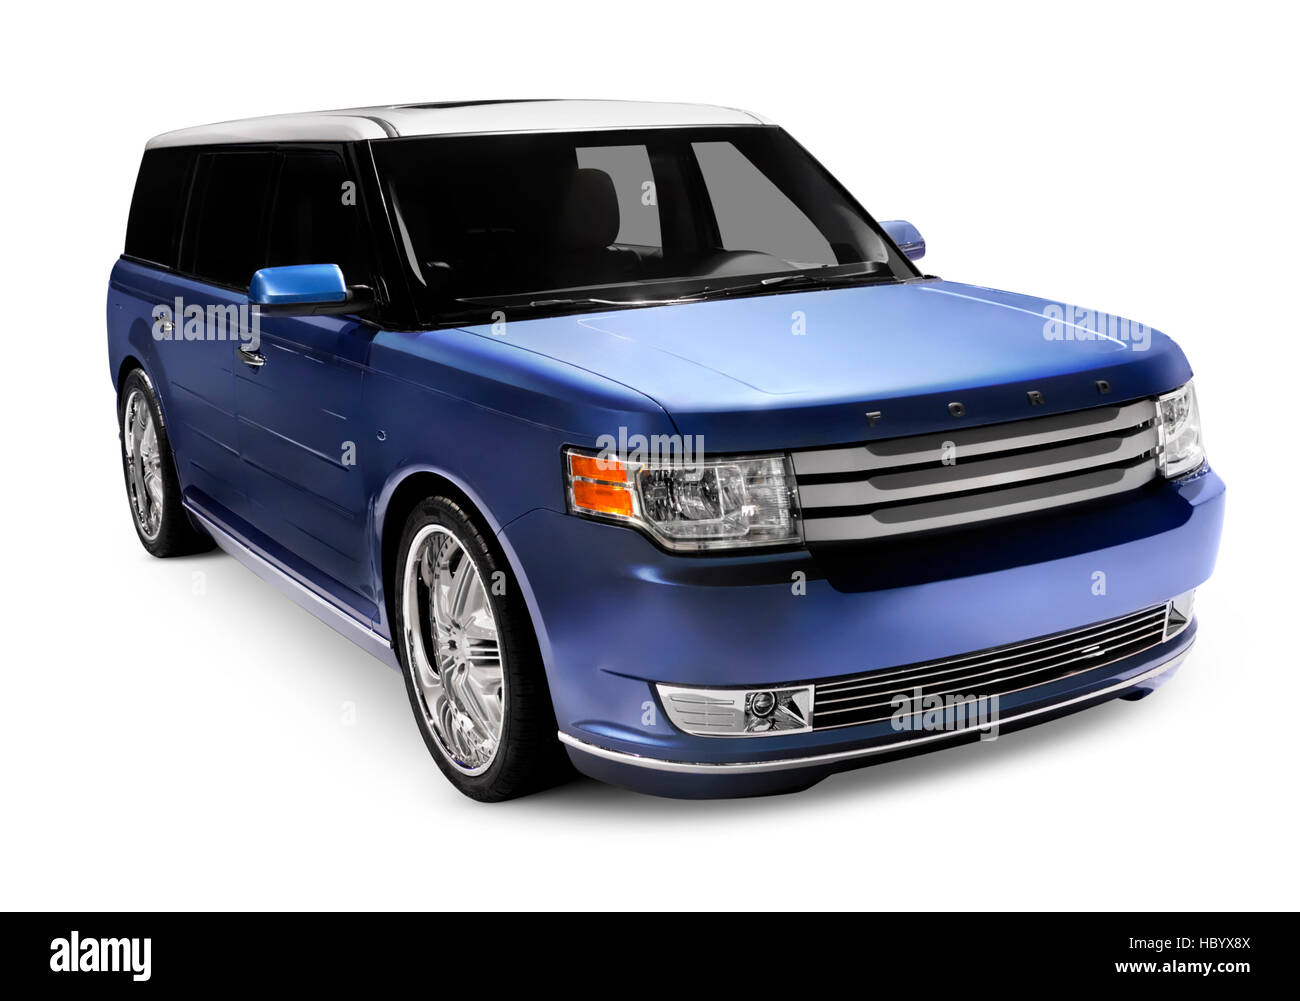 2009 Ford Flex crossover utility vehicle, CUV - Stock Image